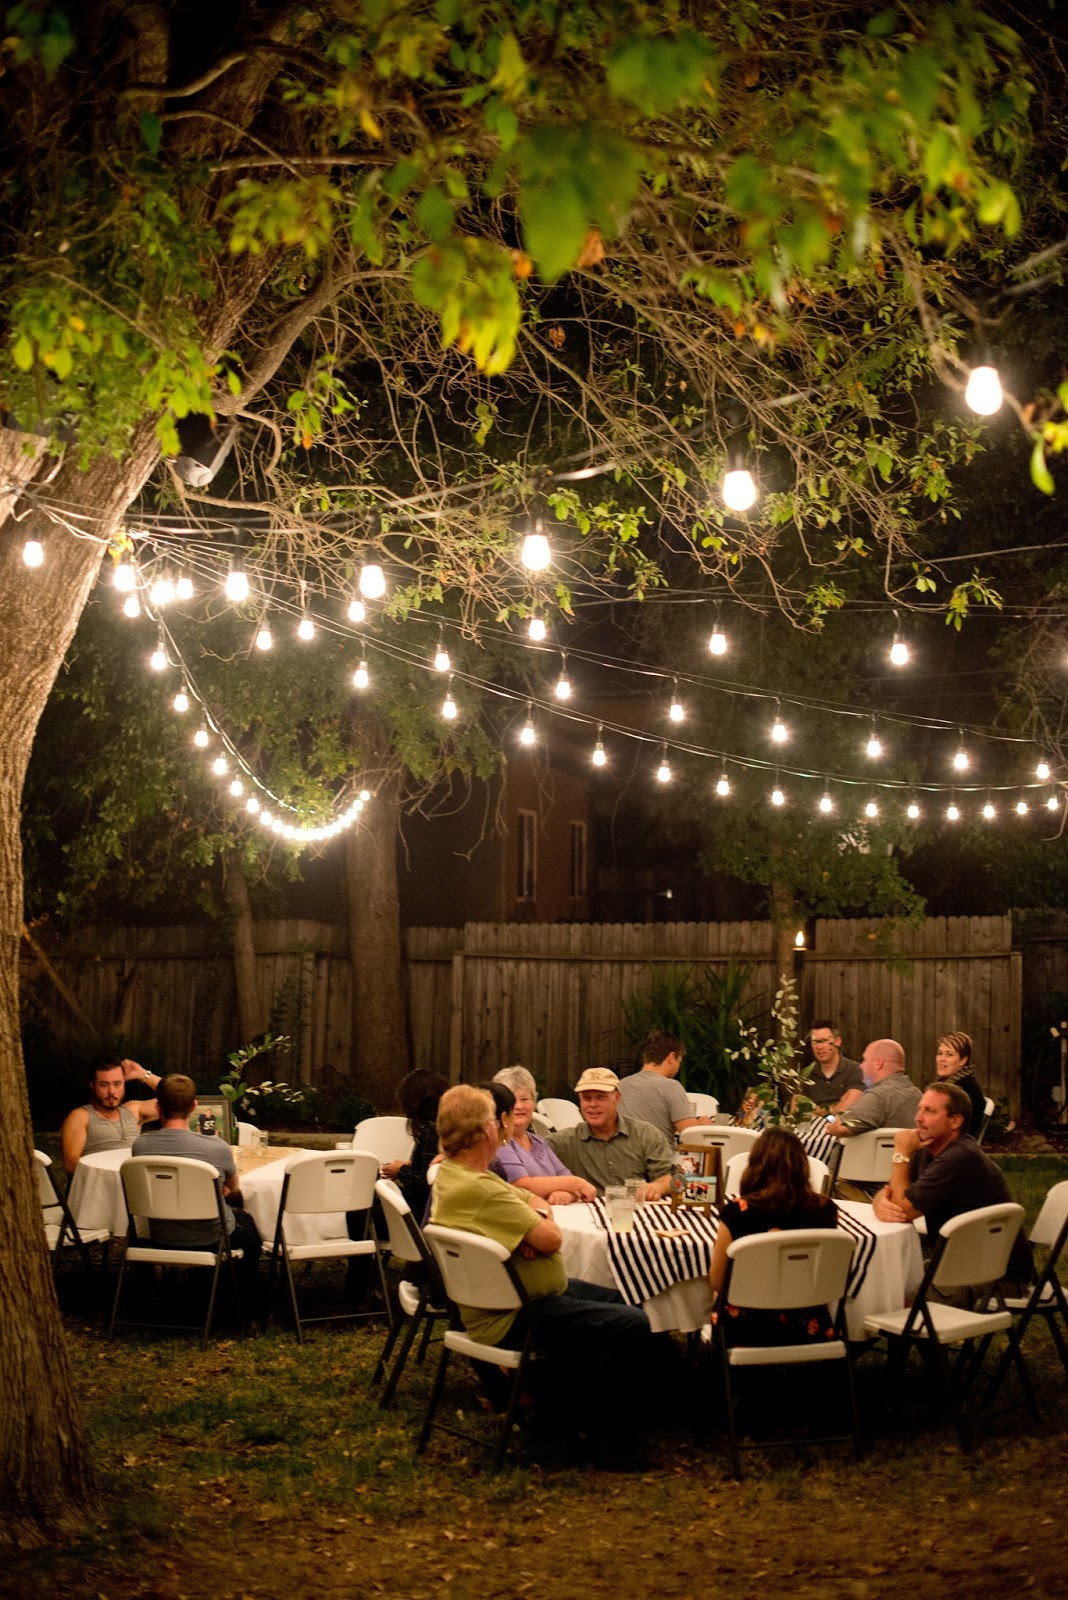 Party In Backyard Ideas  Domestic Fashionista Backyard Birthday Party For the Guy